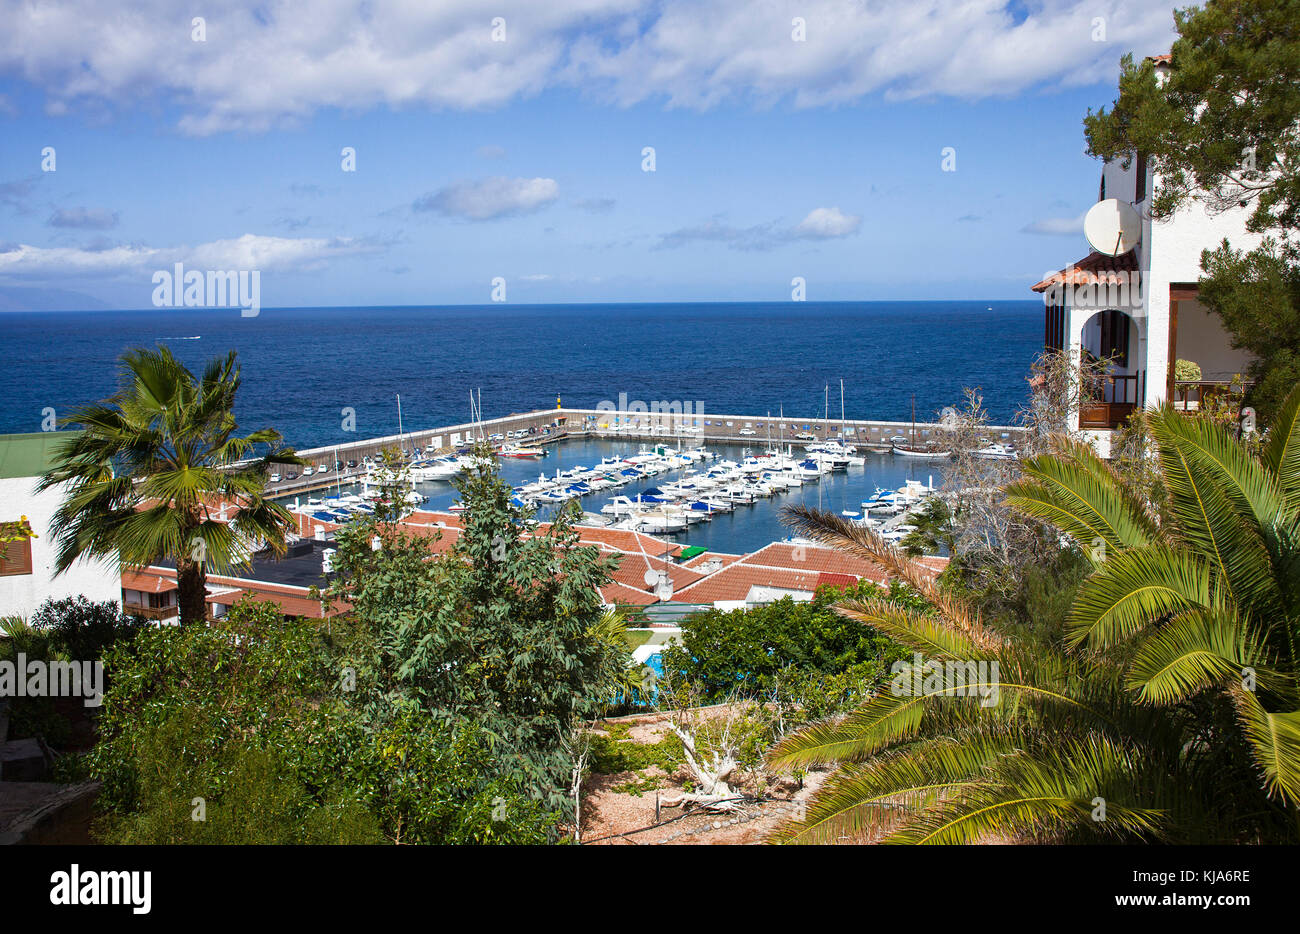 View on harbour of Gigantes, west site of the island, Tenerife island, Canary islands, Spain - Stock Image